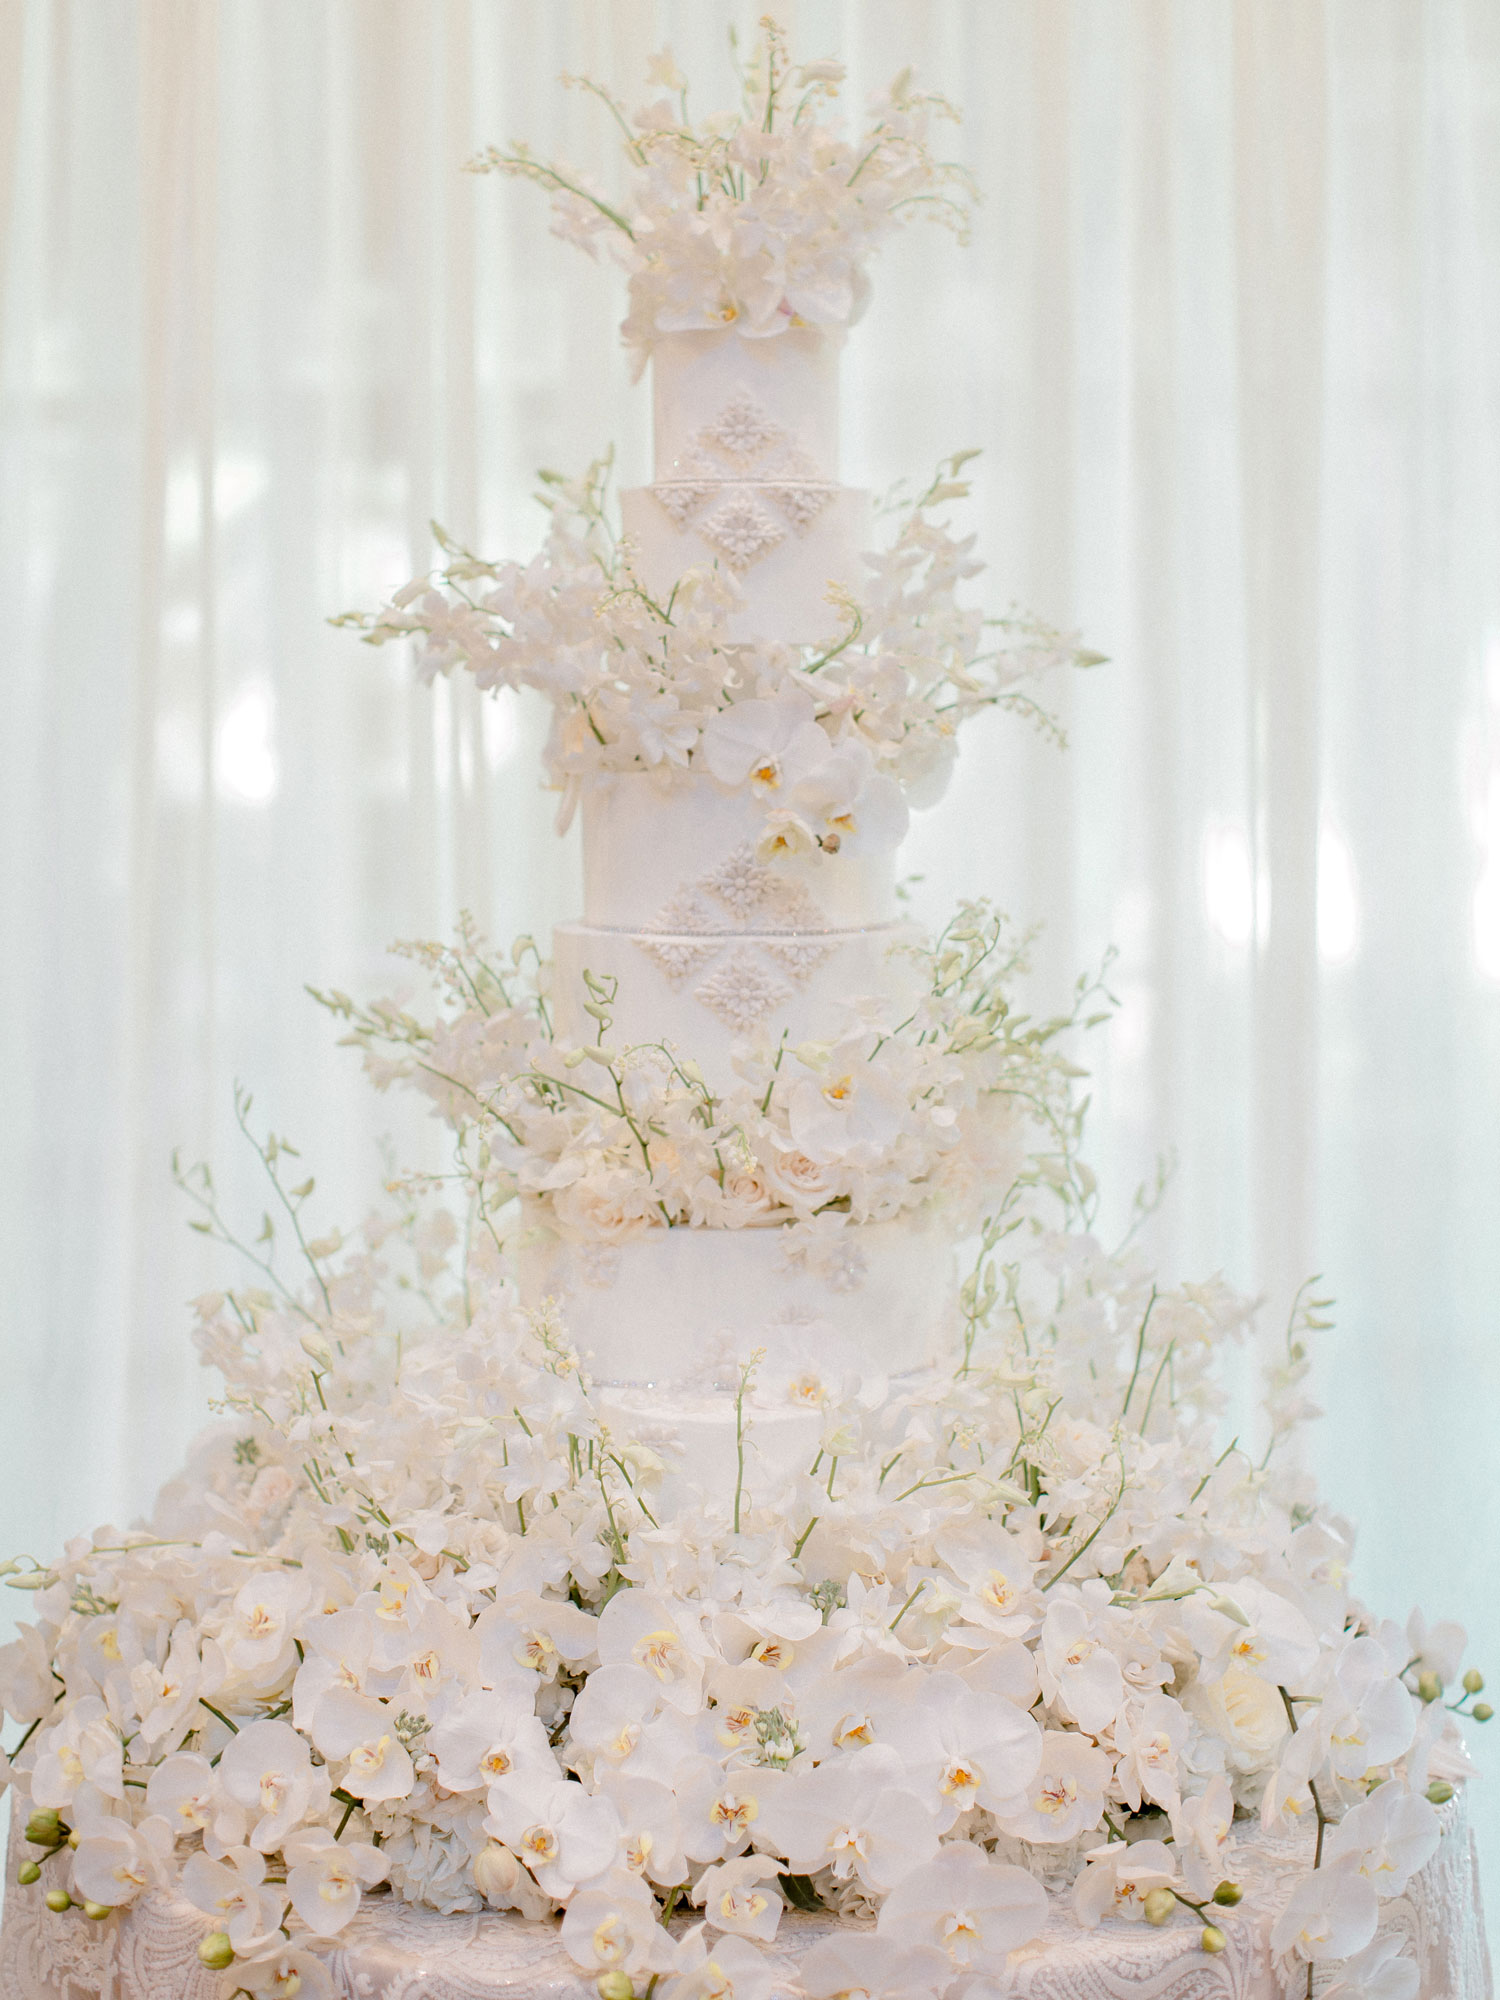 Opulent white wedding cake ideas with hundreds of sugar flowers